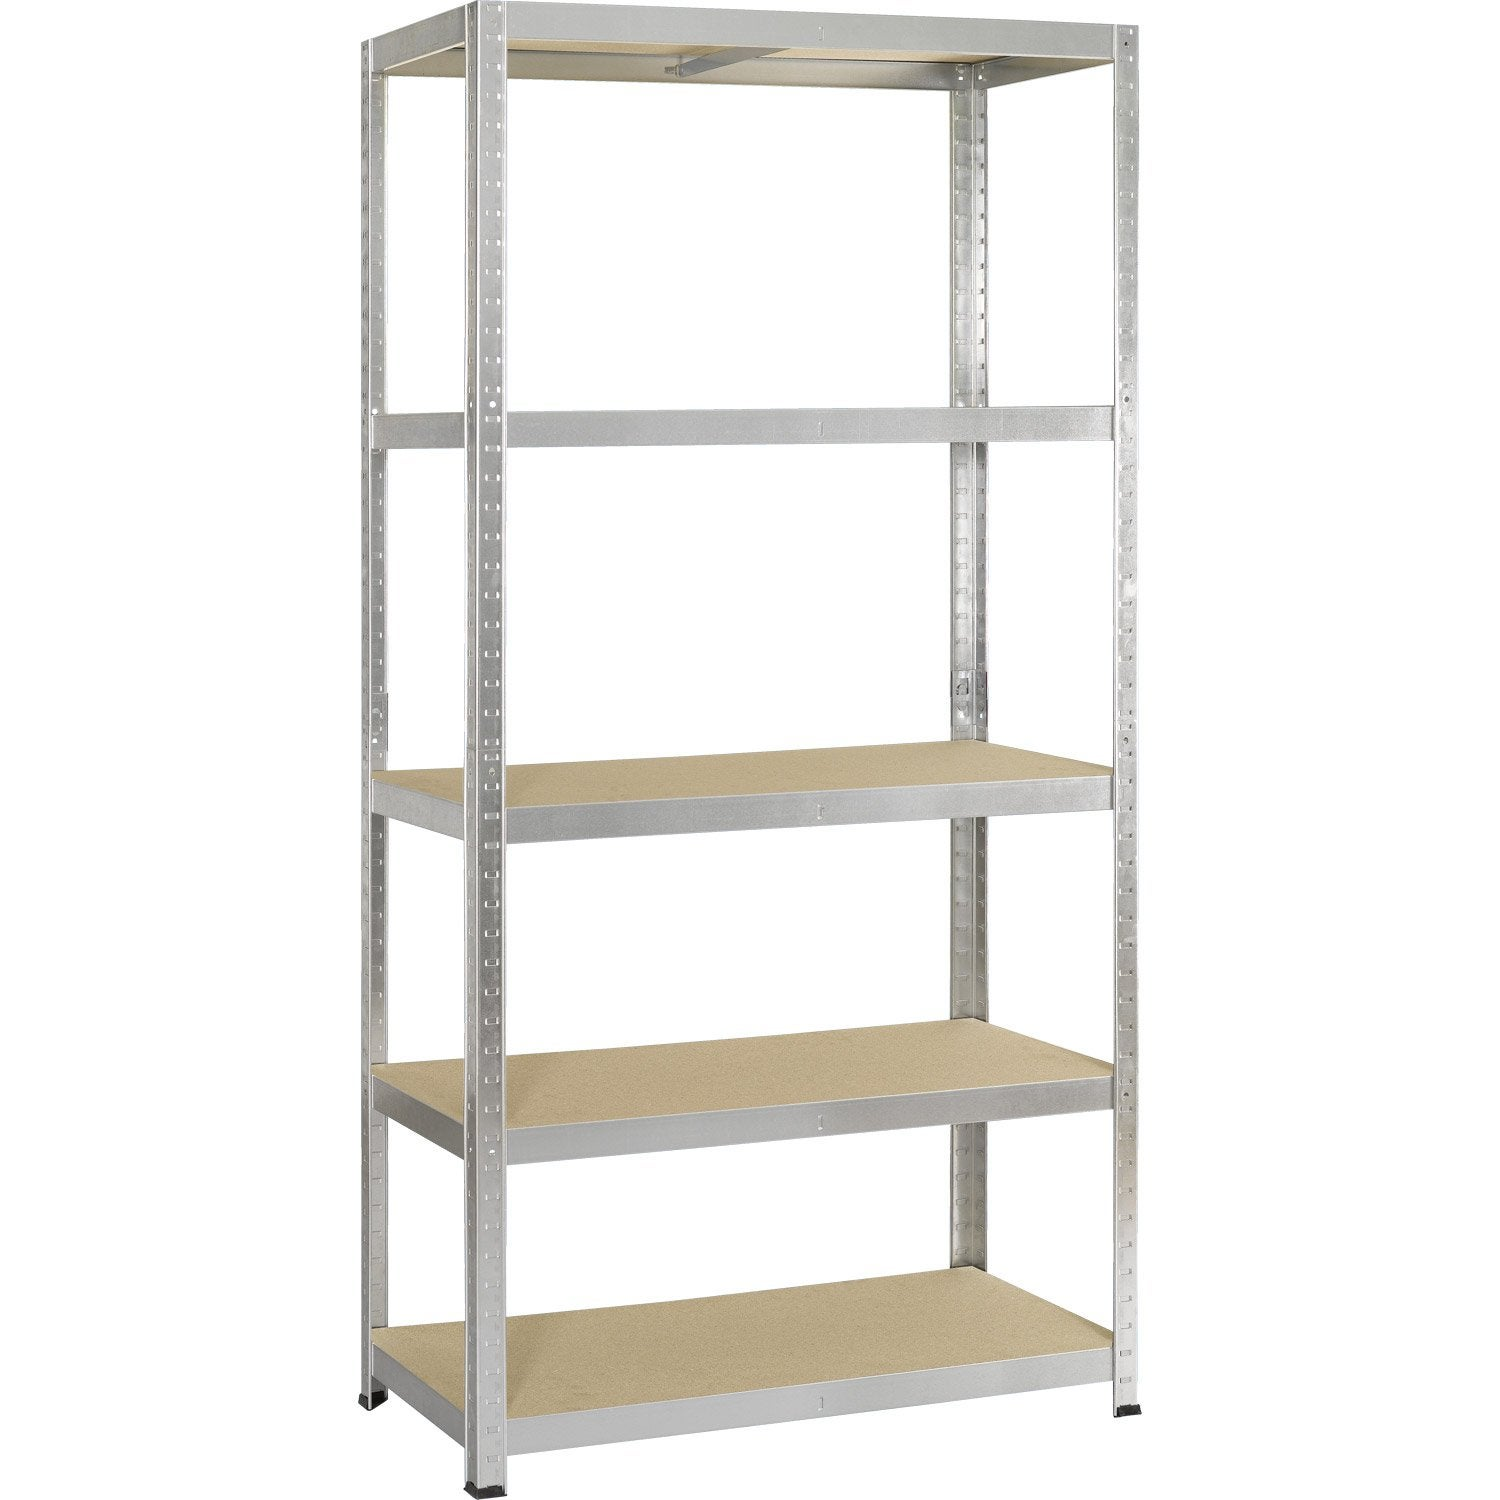 Etagere metal avasco racky - Etagere metallique modulable ...